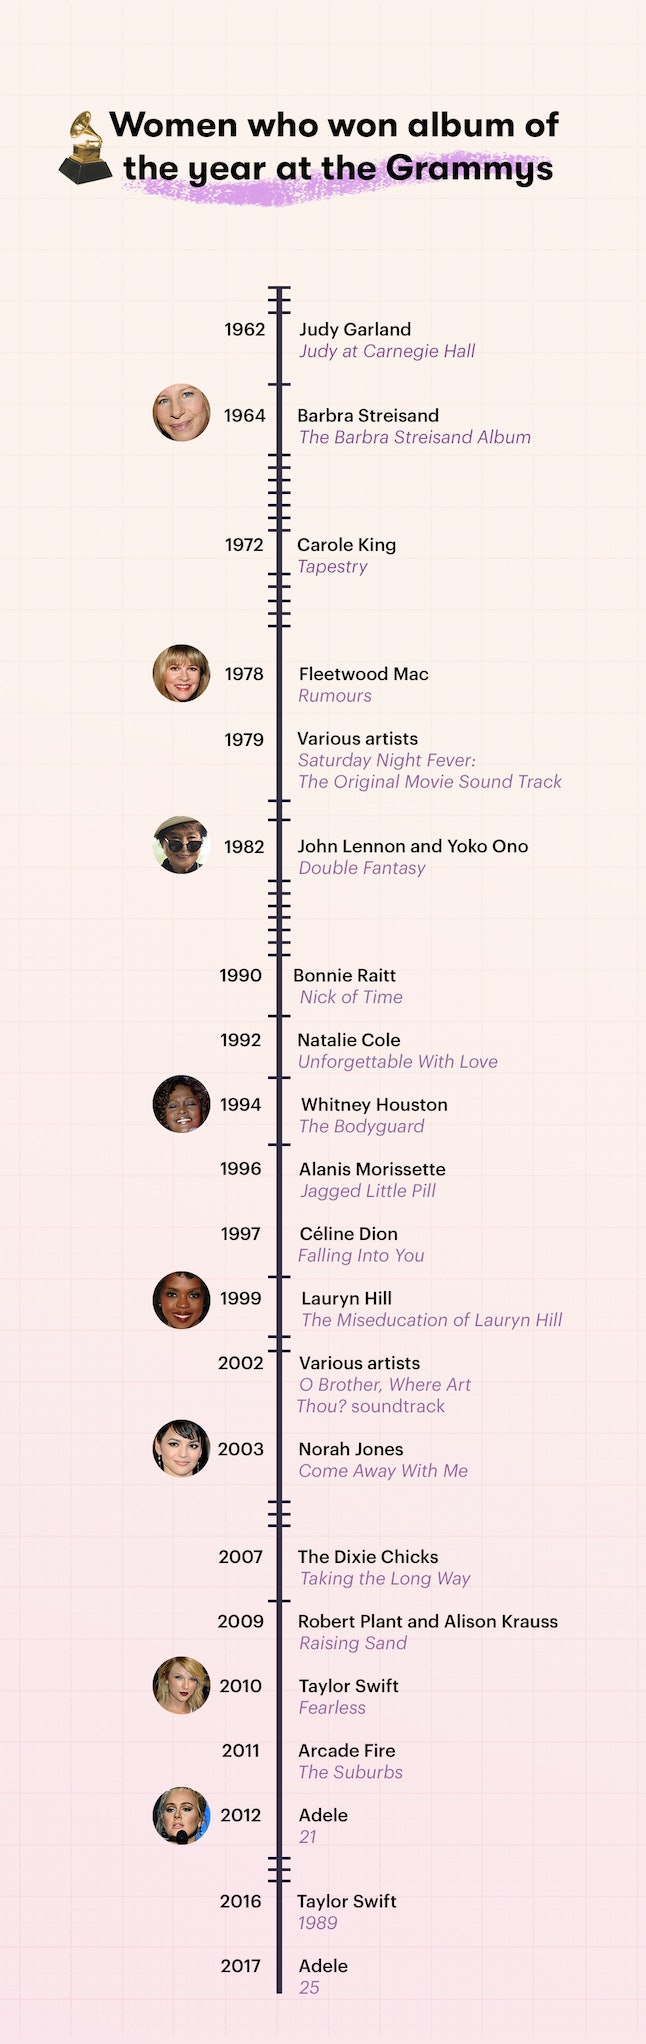 A timeline of women who have won the Grammy for album of the year